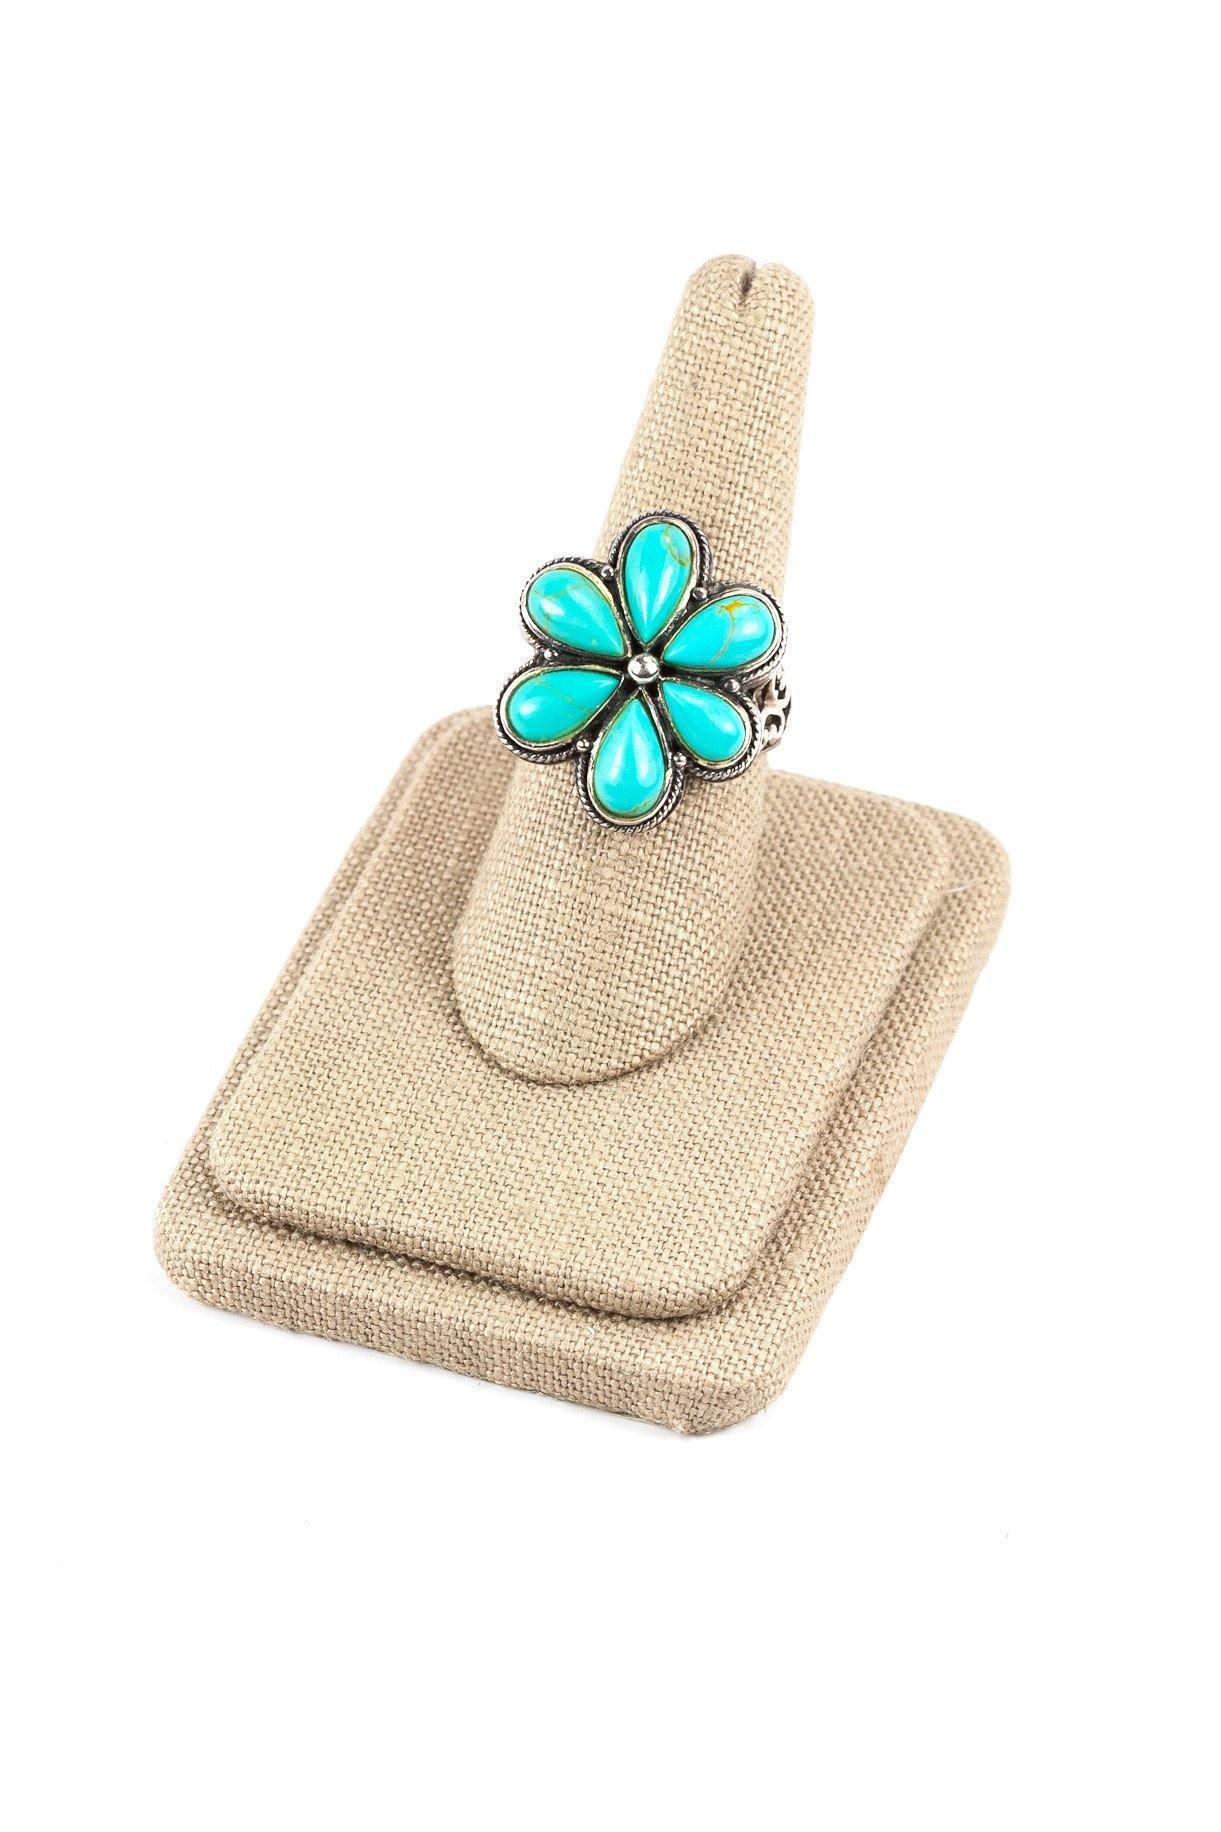 80's__Vintage__Floral Turquoise Sterling Ring